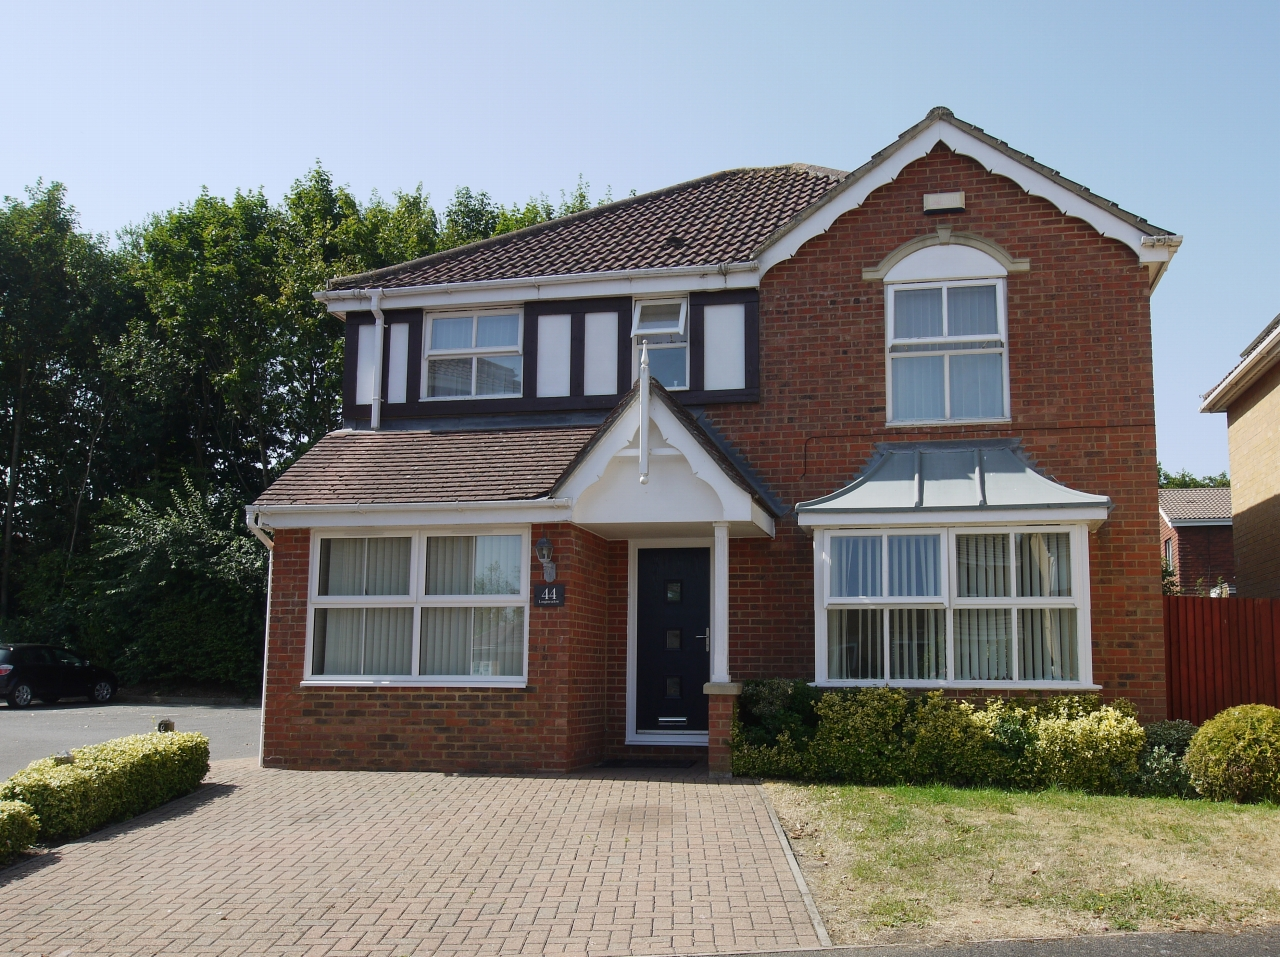 4 bedroom detached house Sale Agreed in Sevenoaks - Photograph 1